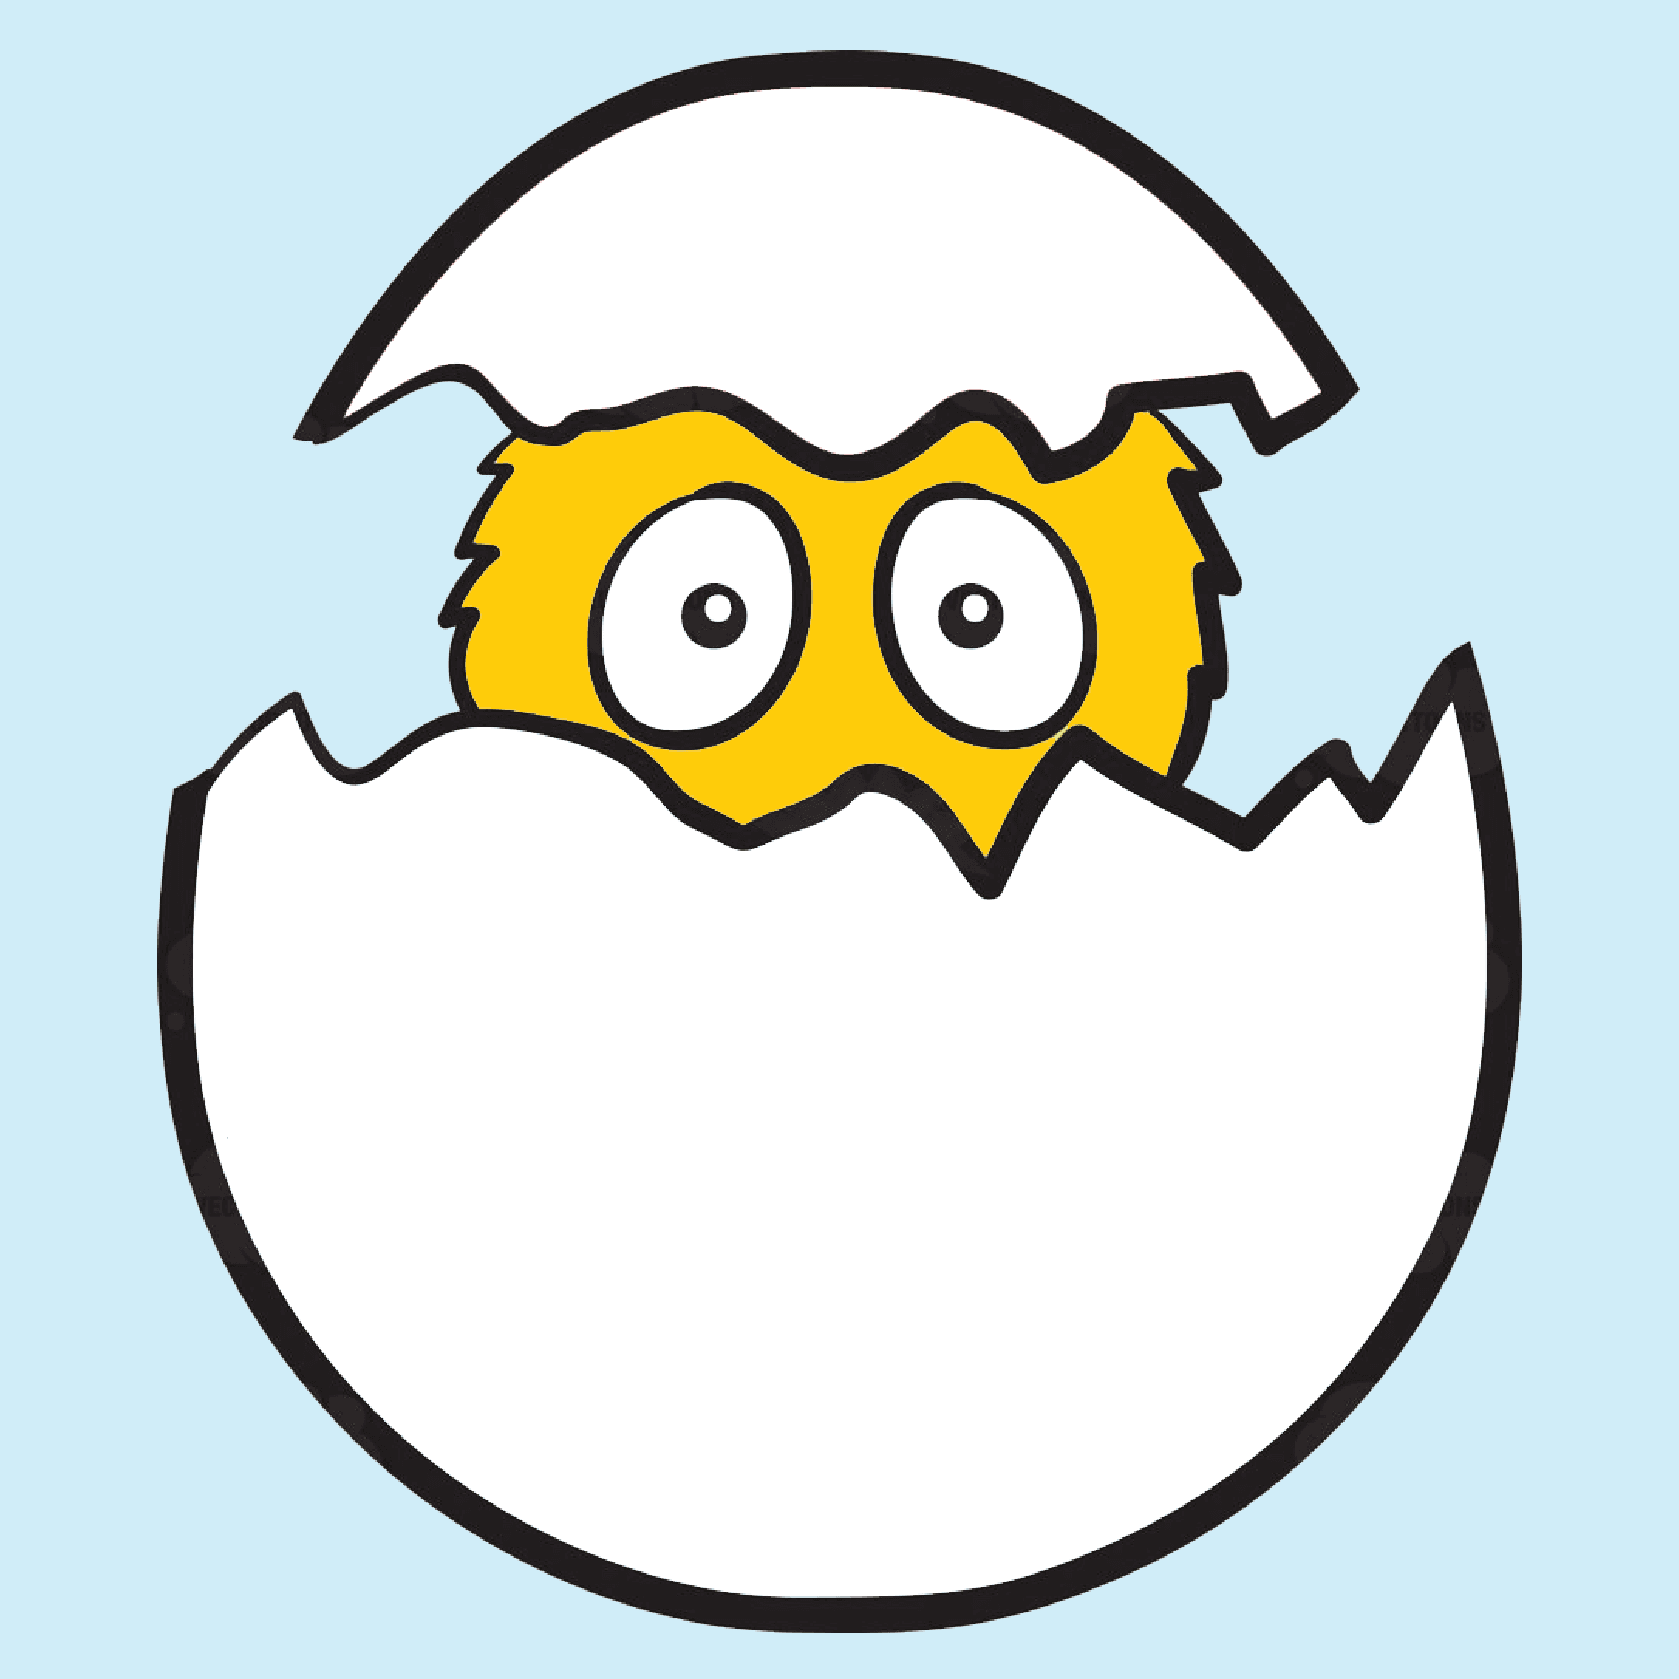 Cartoon image of a chick hatching from an egg.